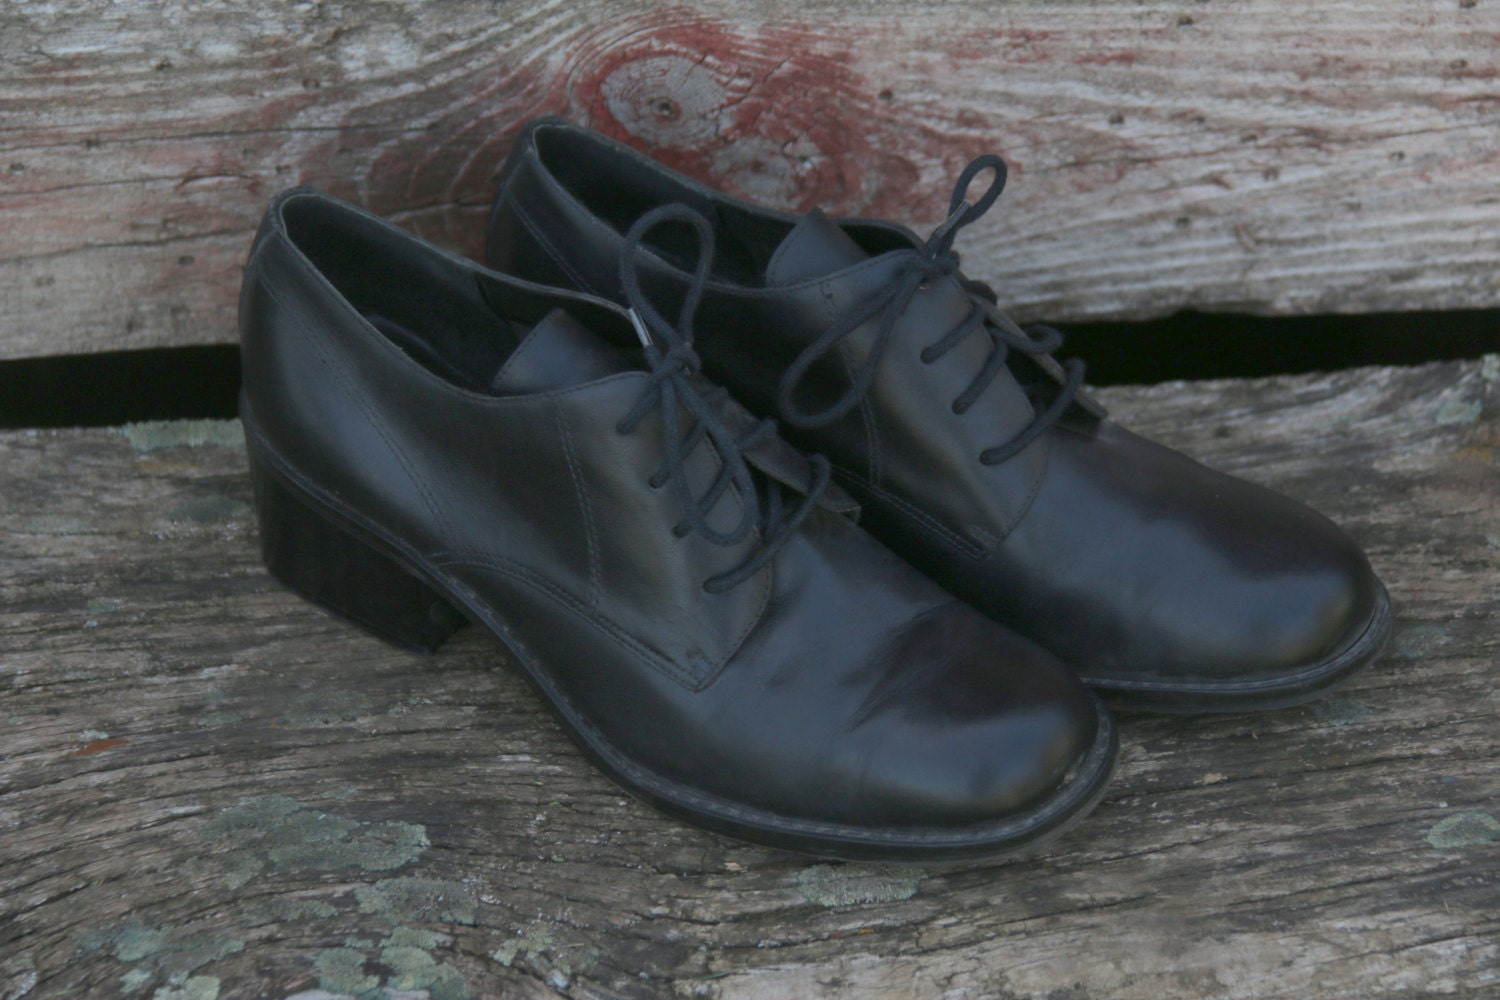 vintage leather ankle boots size 9 narrow retro preppy